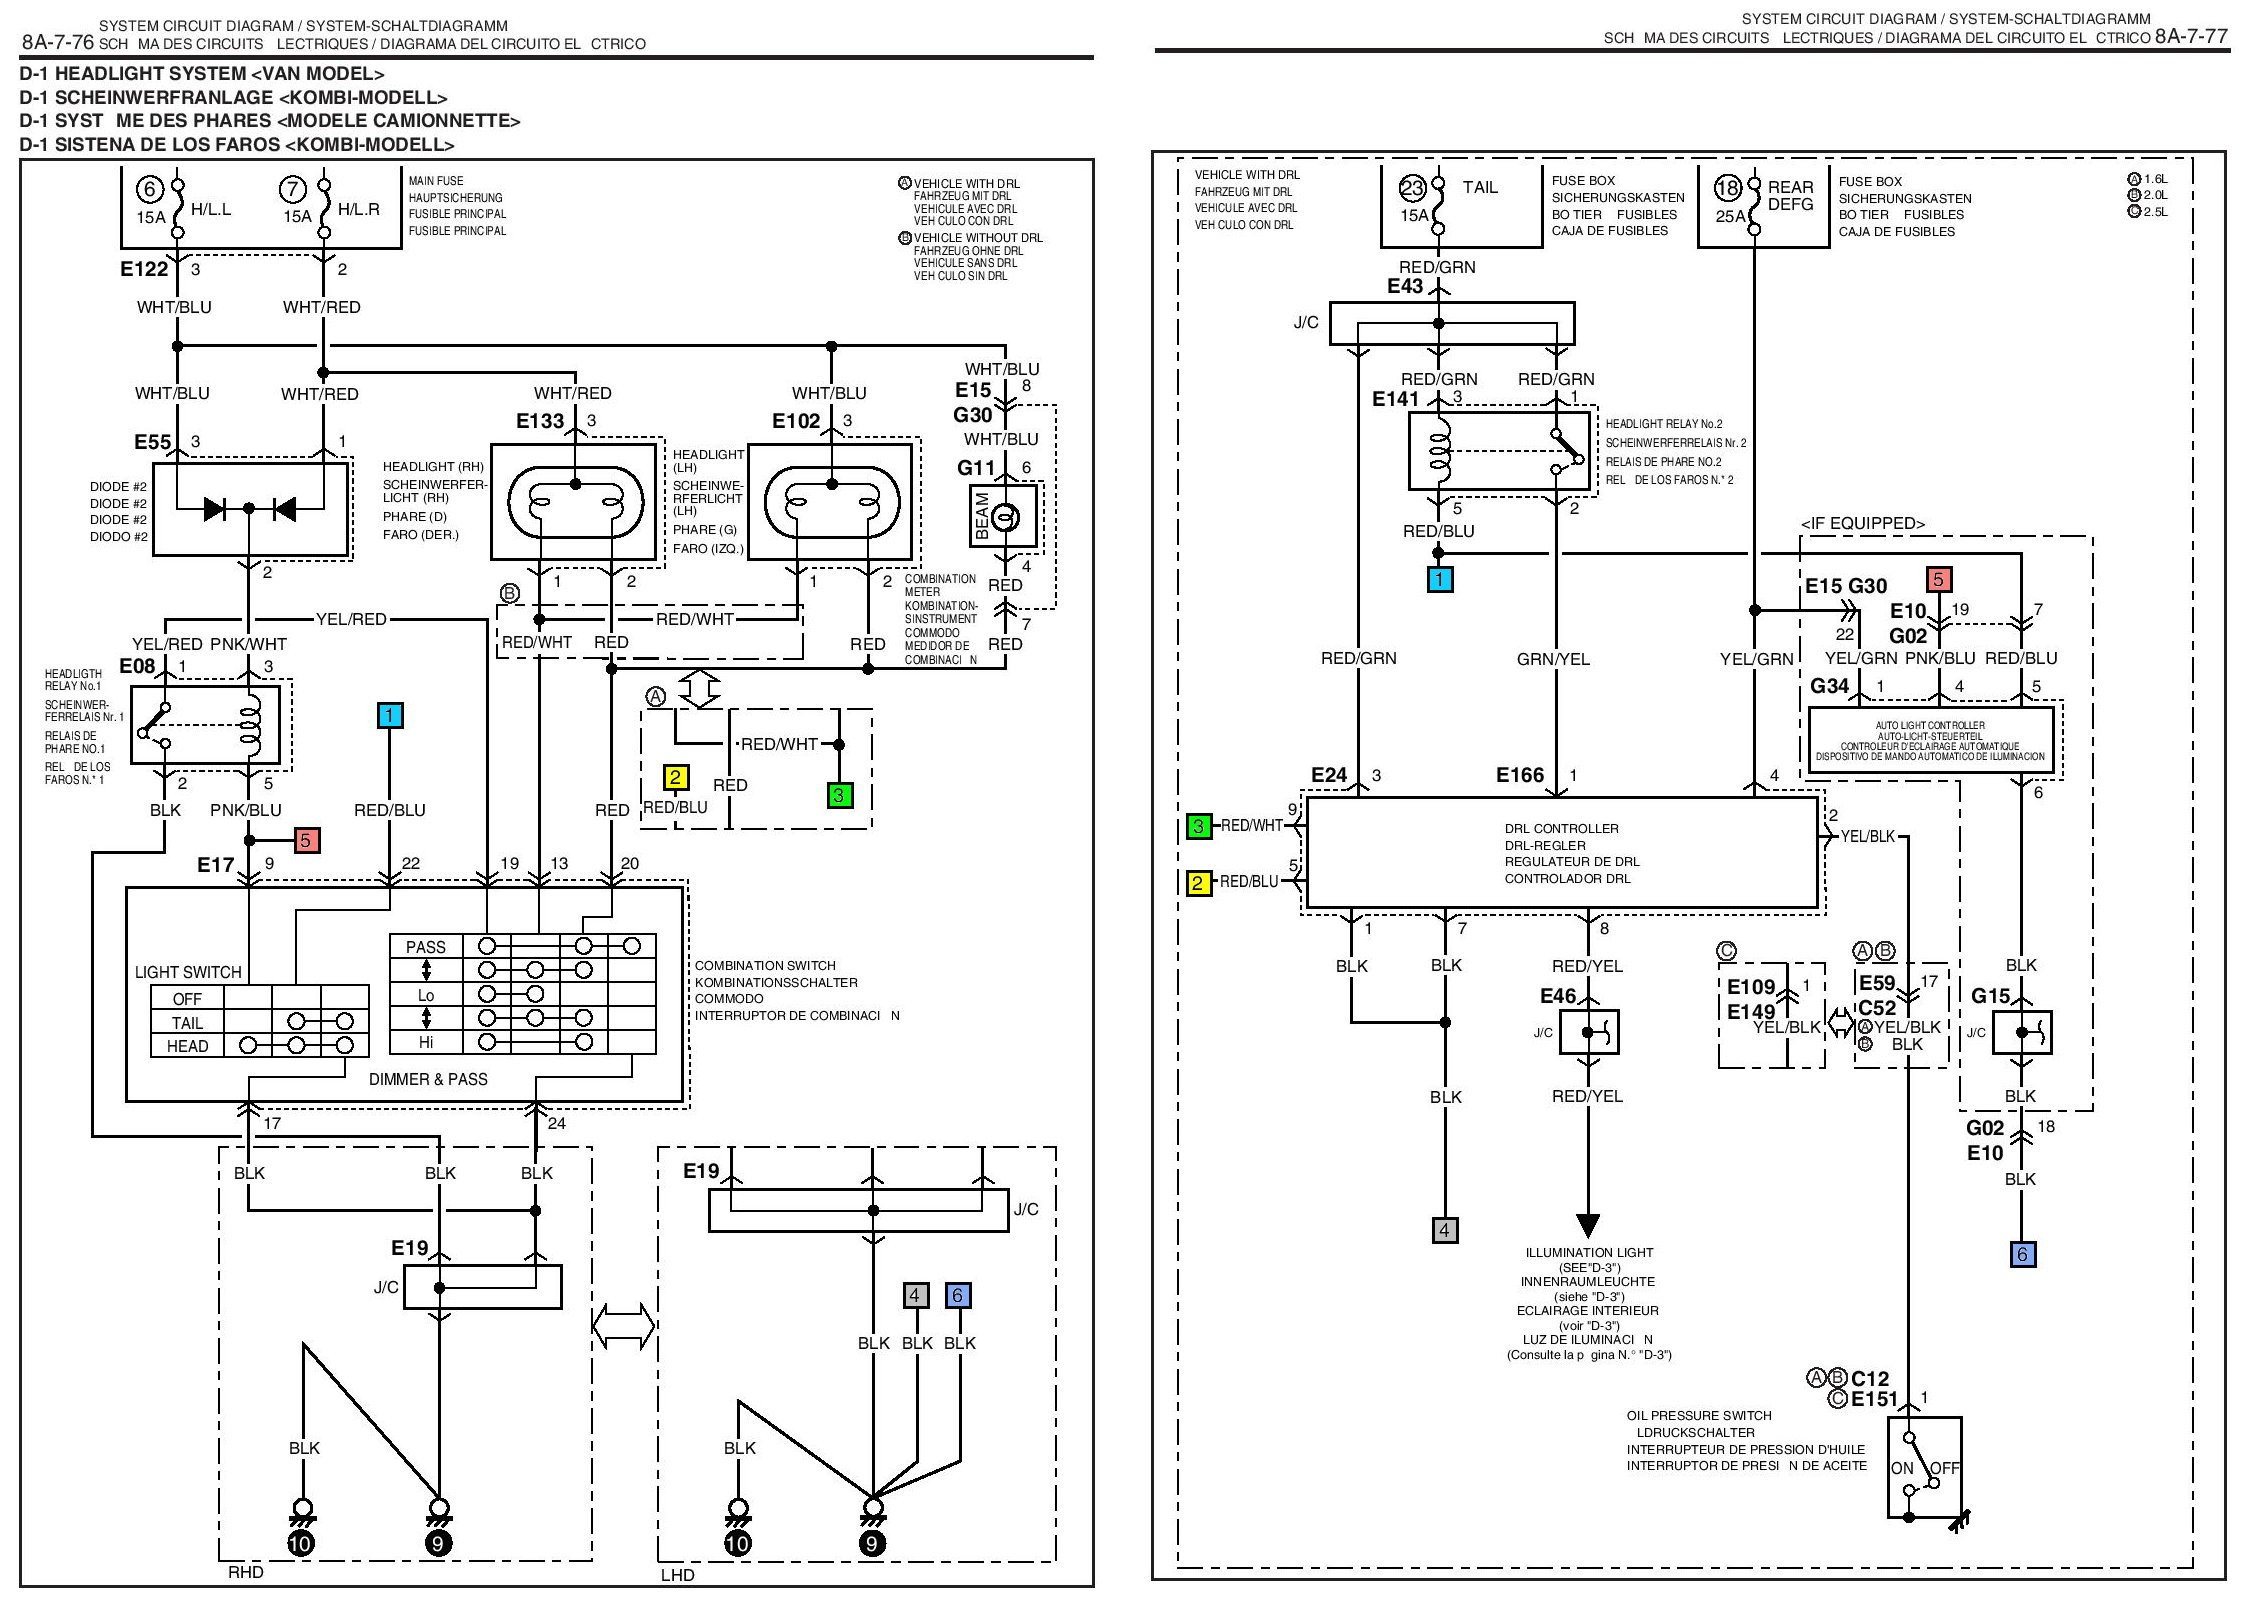 2013 Suzuki Kizashi Wiring Diagram Libraries Diagrams Relay Power Dayton 5yz74n Sx4 Schematic Diagrams2008 Detailed